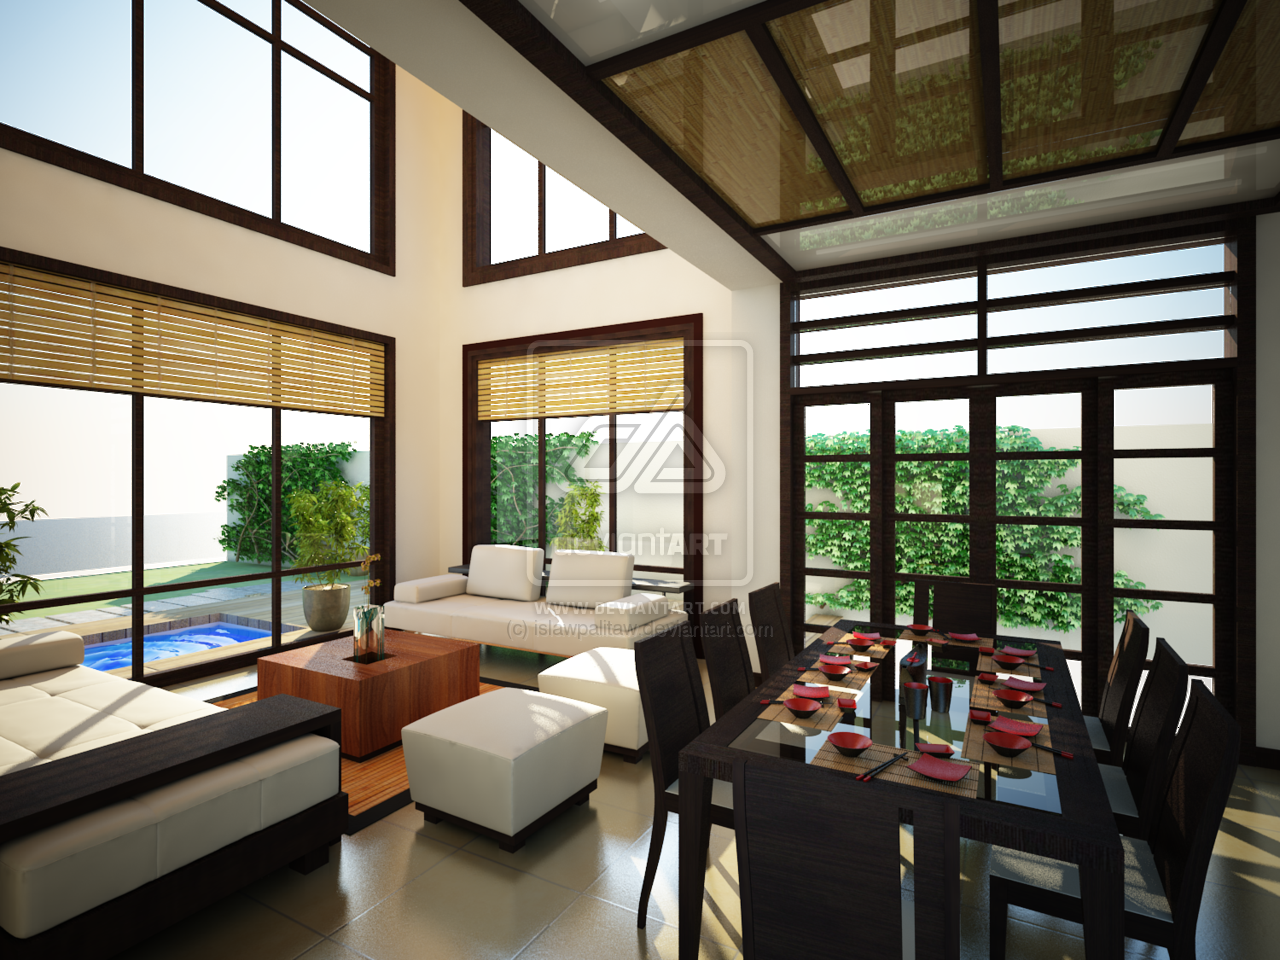 Japanese Inspired Living Room by islawpalitaw.deviantart.com ...